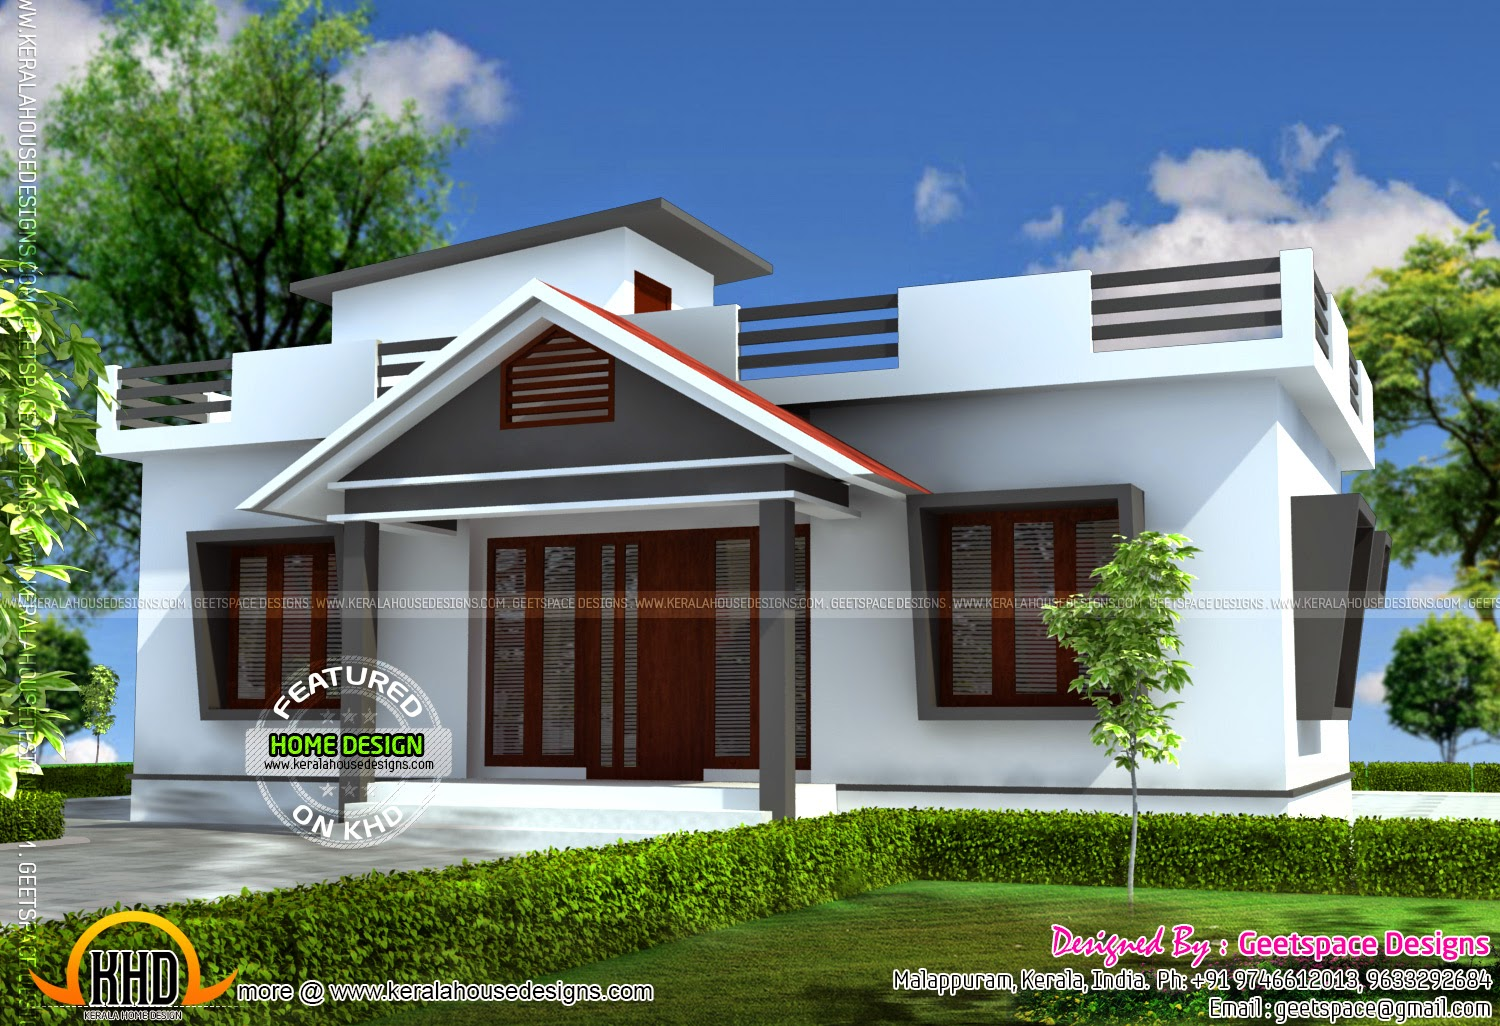 ... House Plans Kerala Home Design. on kerala style house design